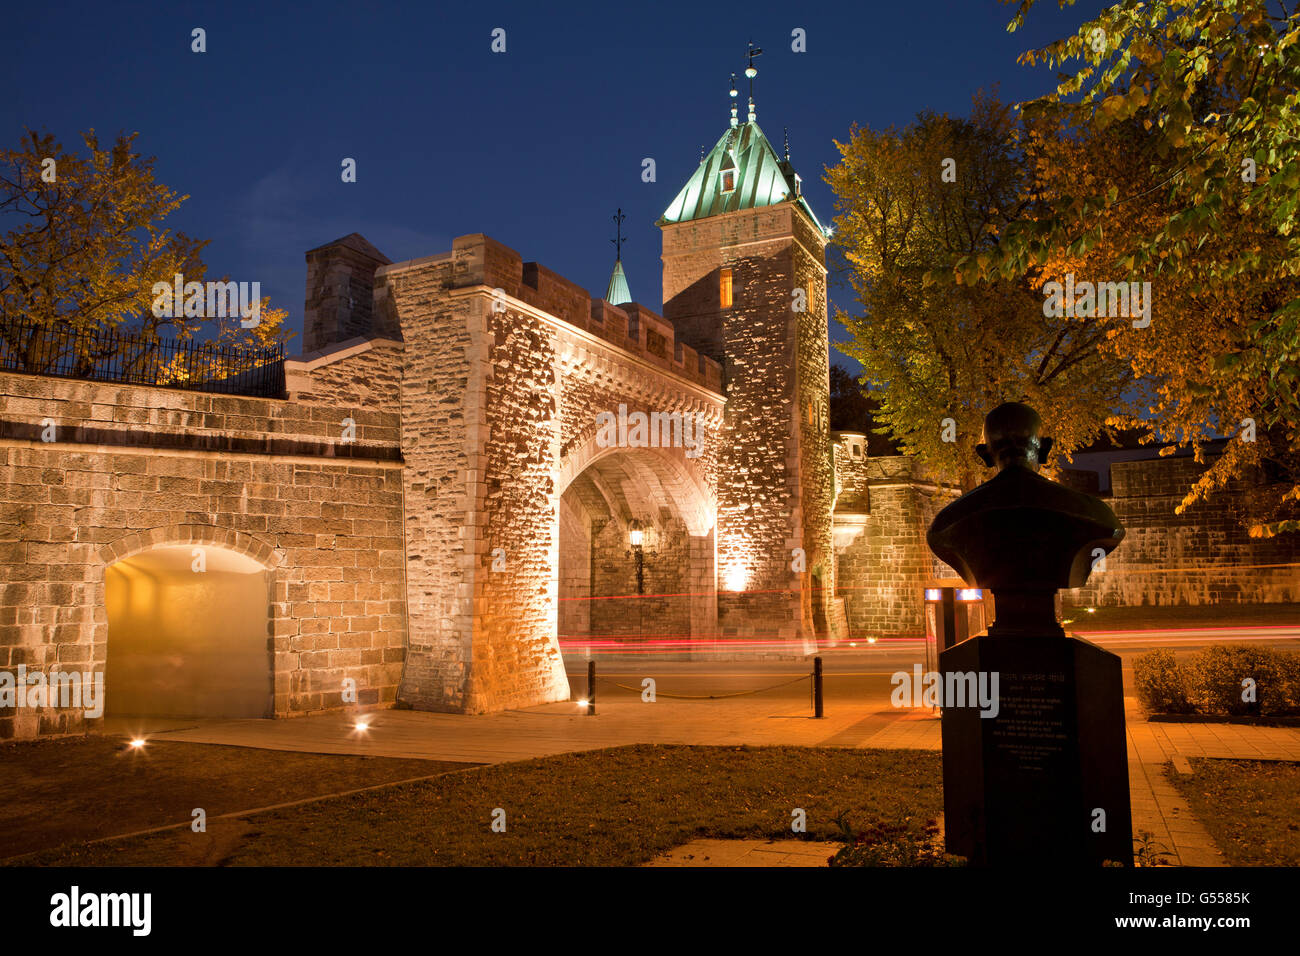 Canada, Quebec City, Old Quebec, tower and gate in city wall, 'Porte St. Louis' over Rue Saint-Louis, with - Stock Image